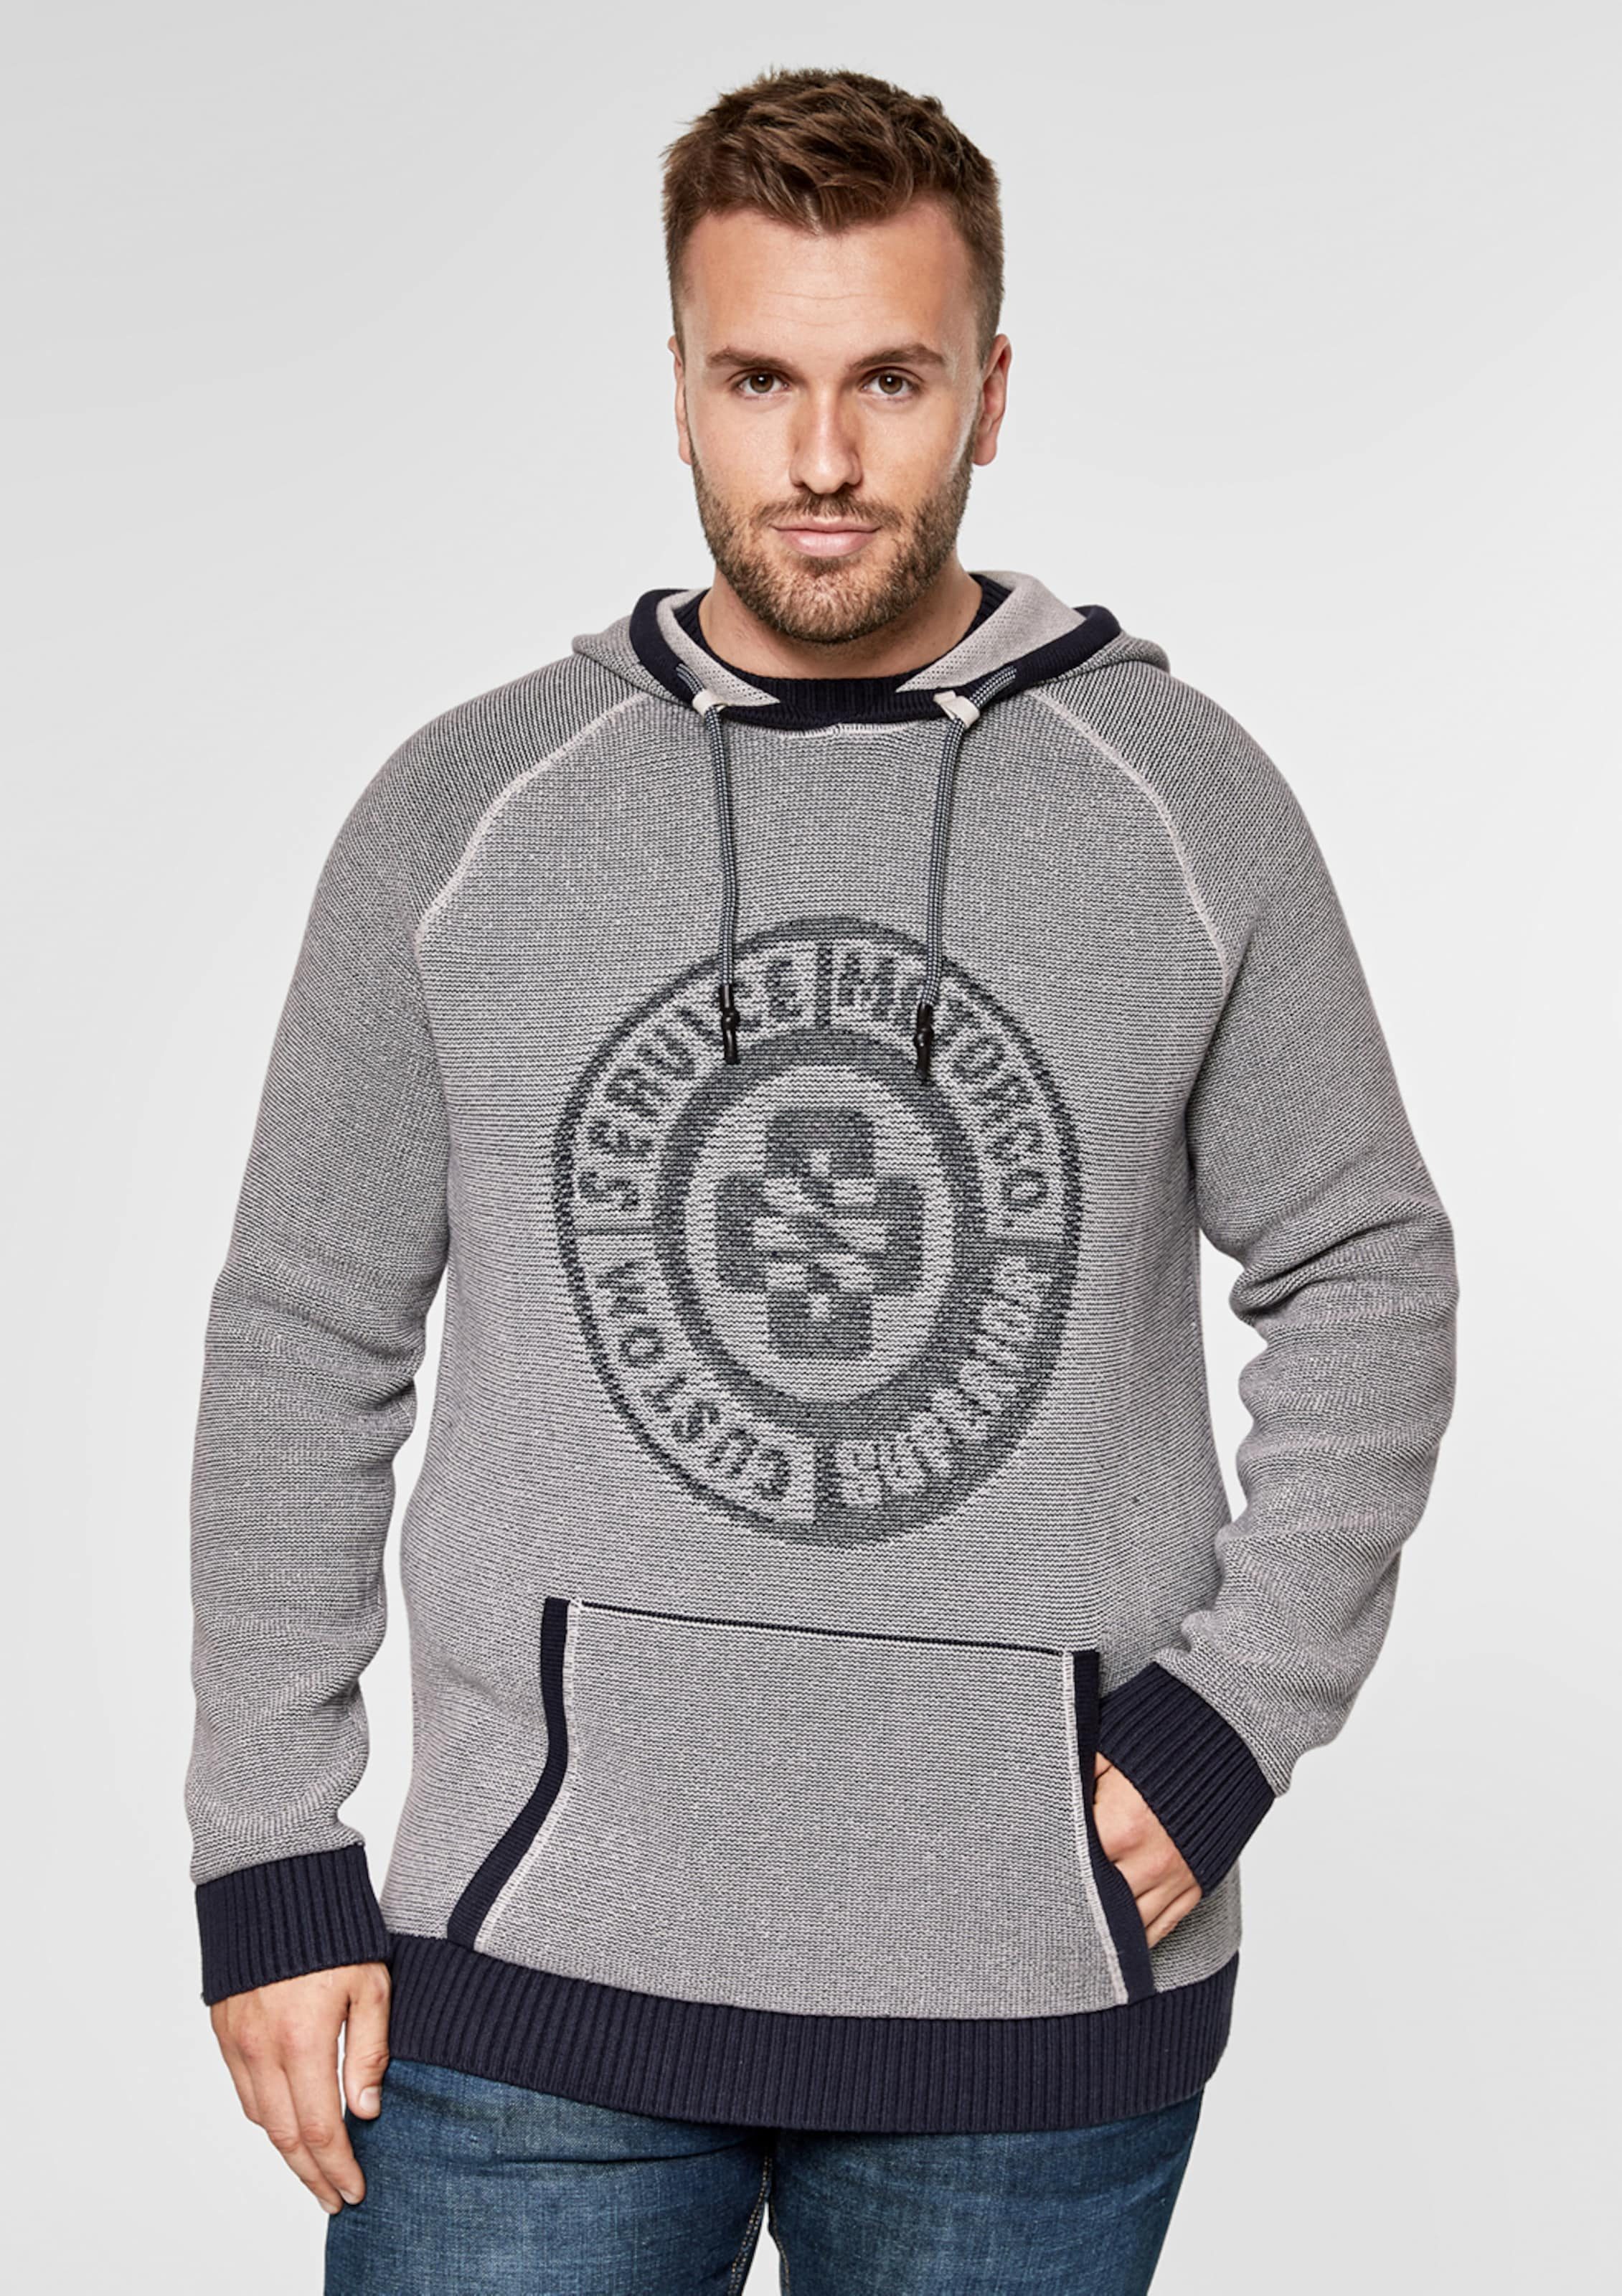 S oliver In GrauDunkelgrau Label Hoodie Red 5AS4RLcjq3